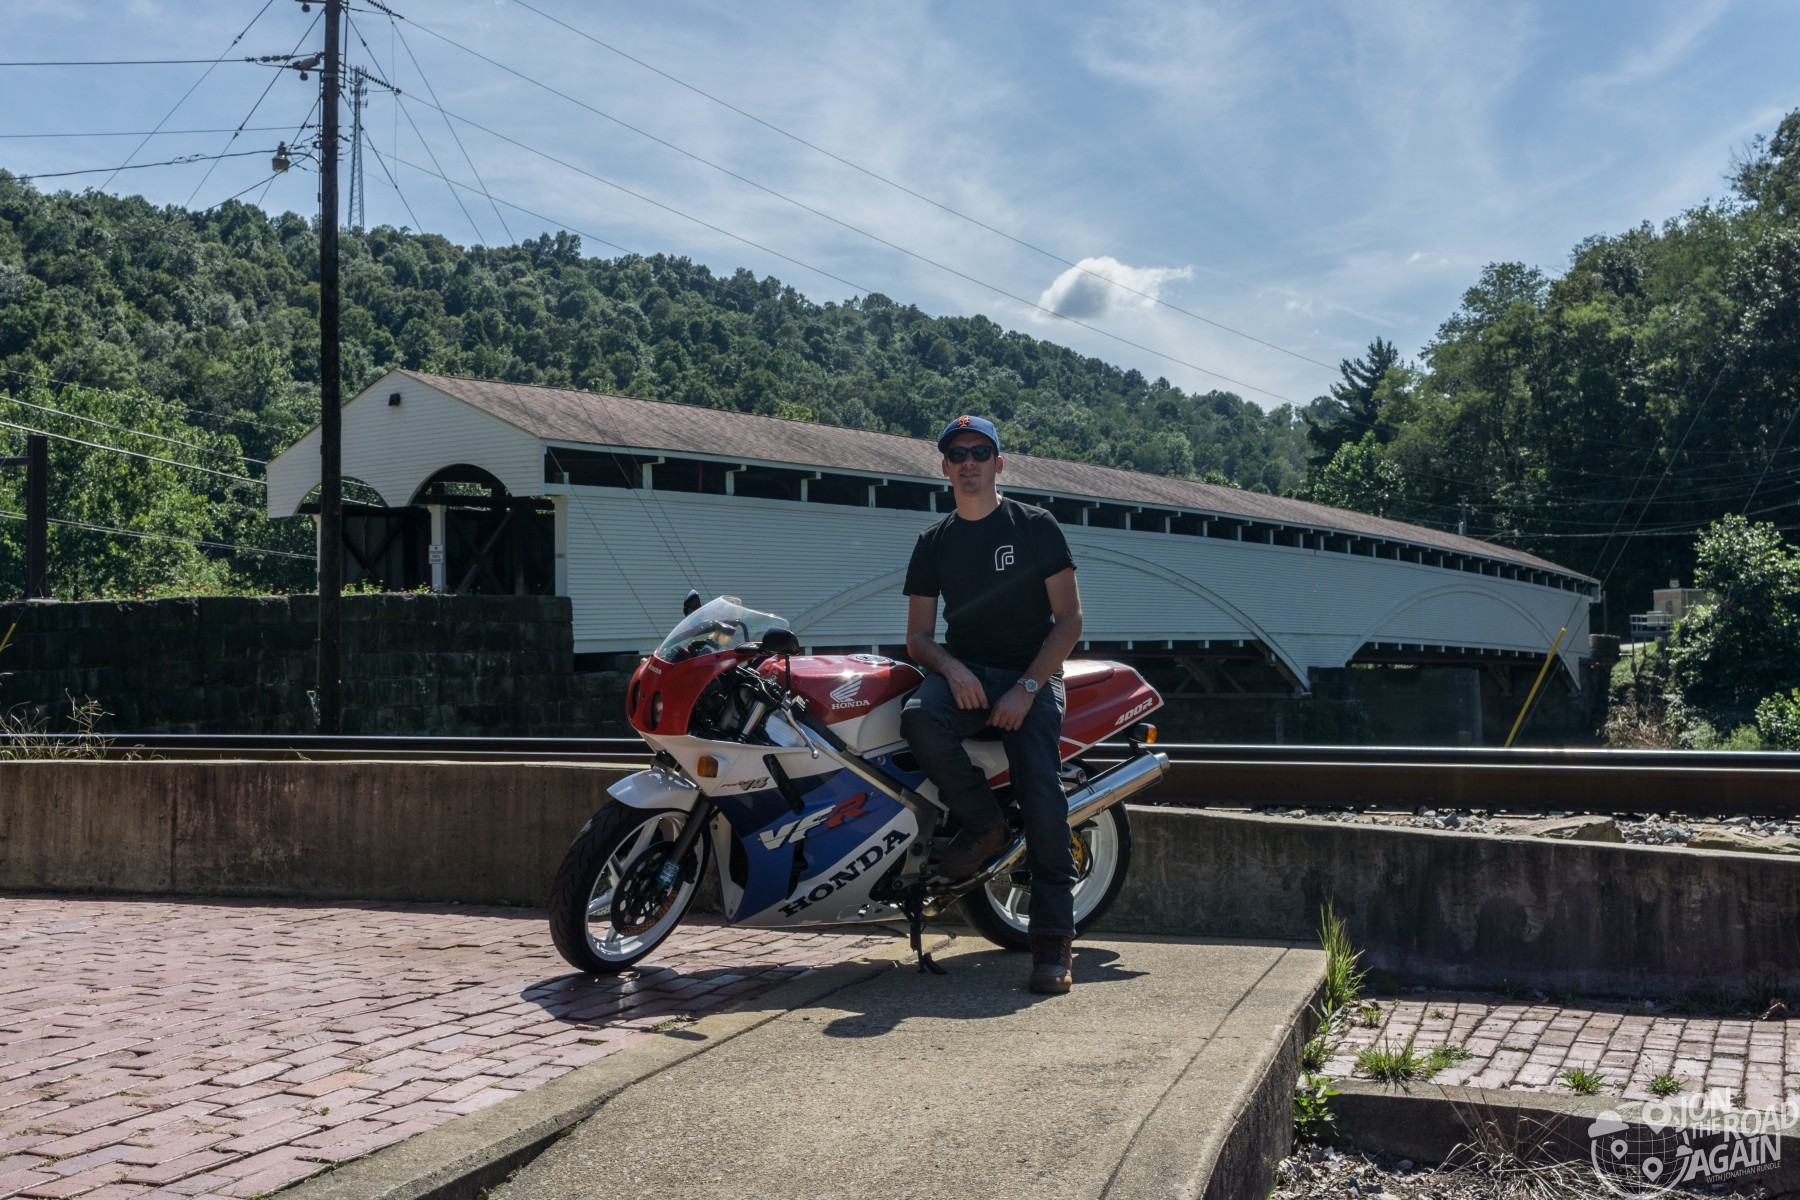 VFR400R Motorcycle at Philippi Covered Bridge